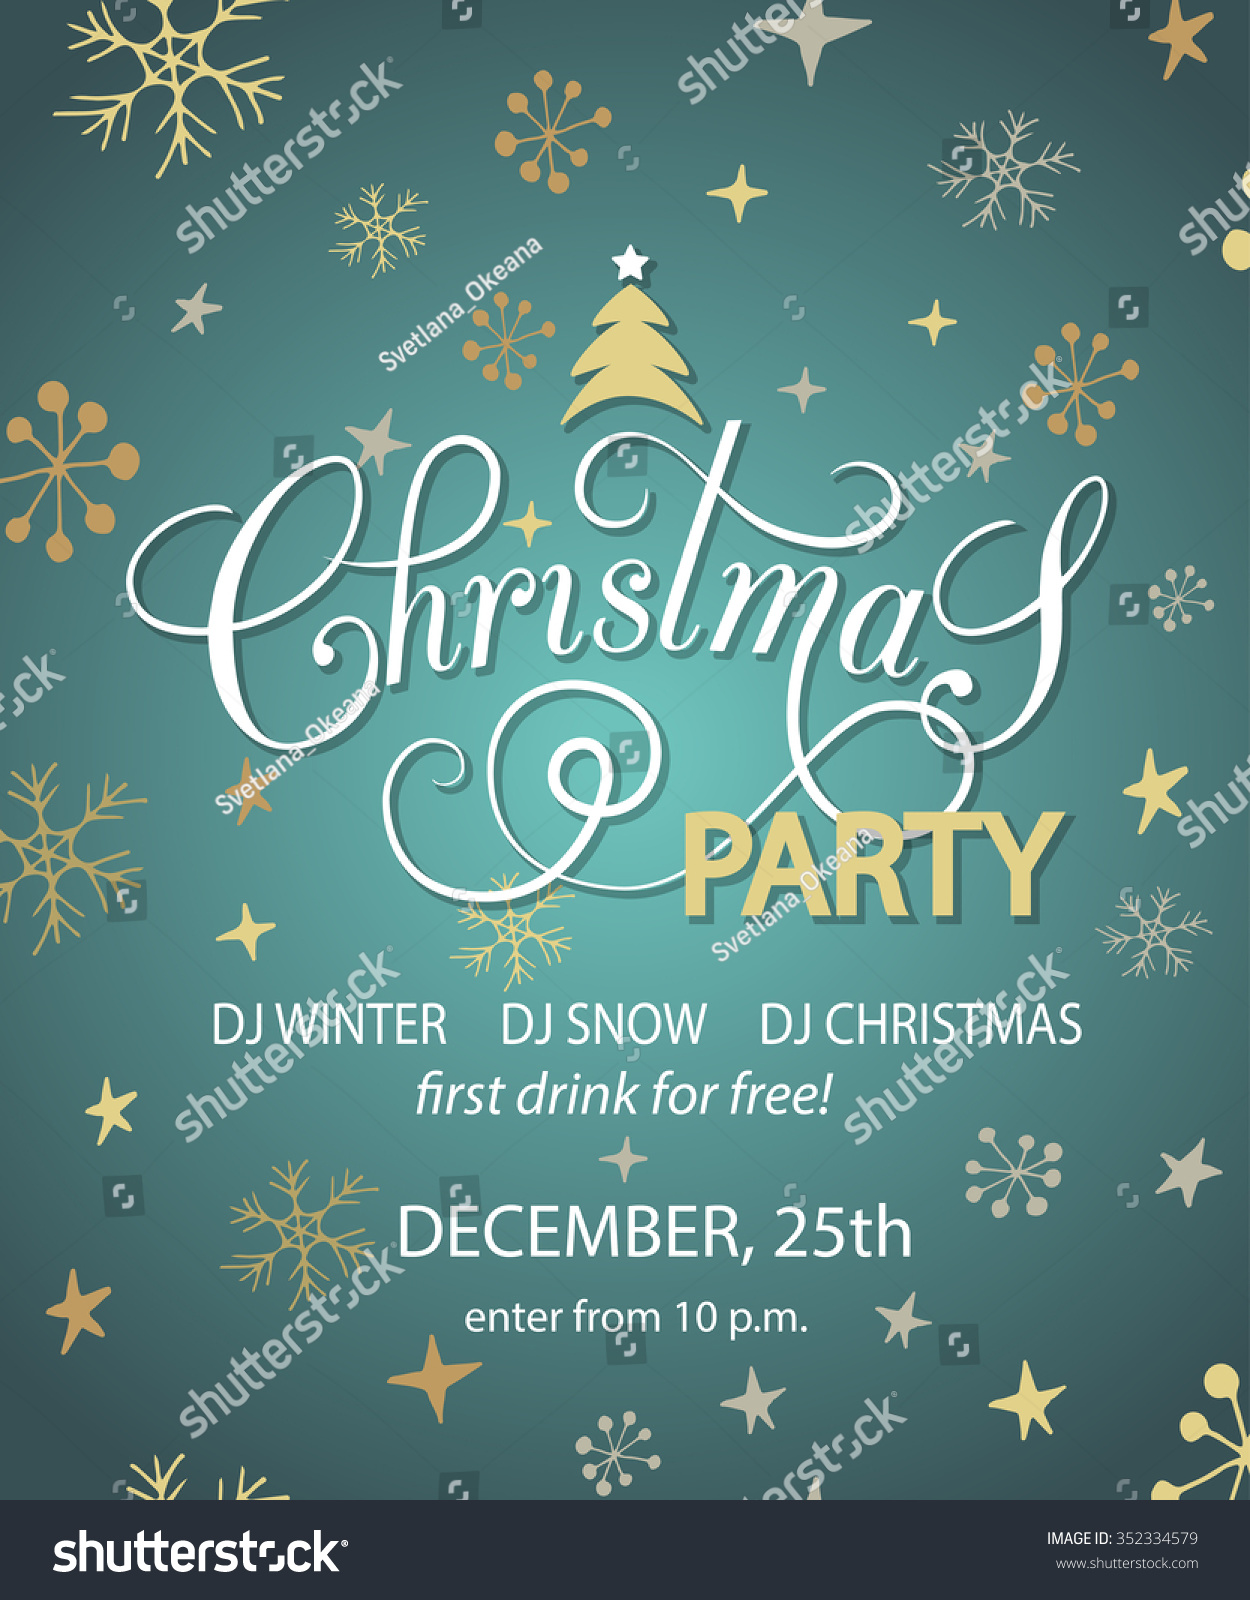 christmas party background design template christmas stock vector christmas party background design template christmas party banner flyer lettering for christmas party